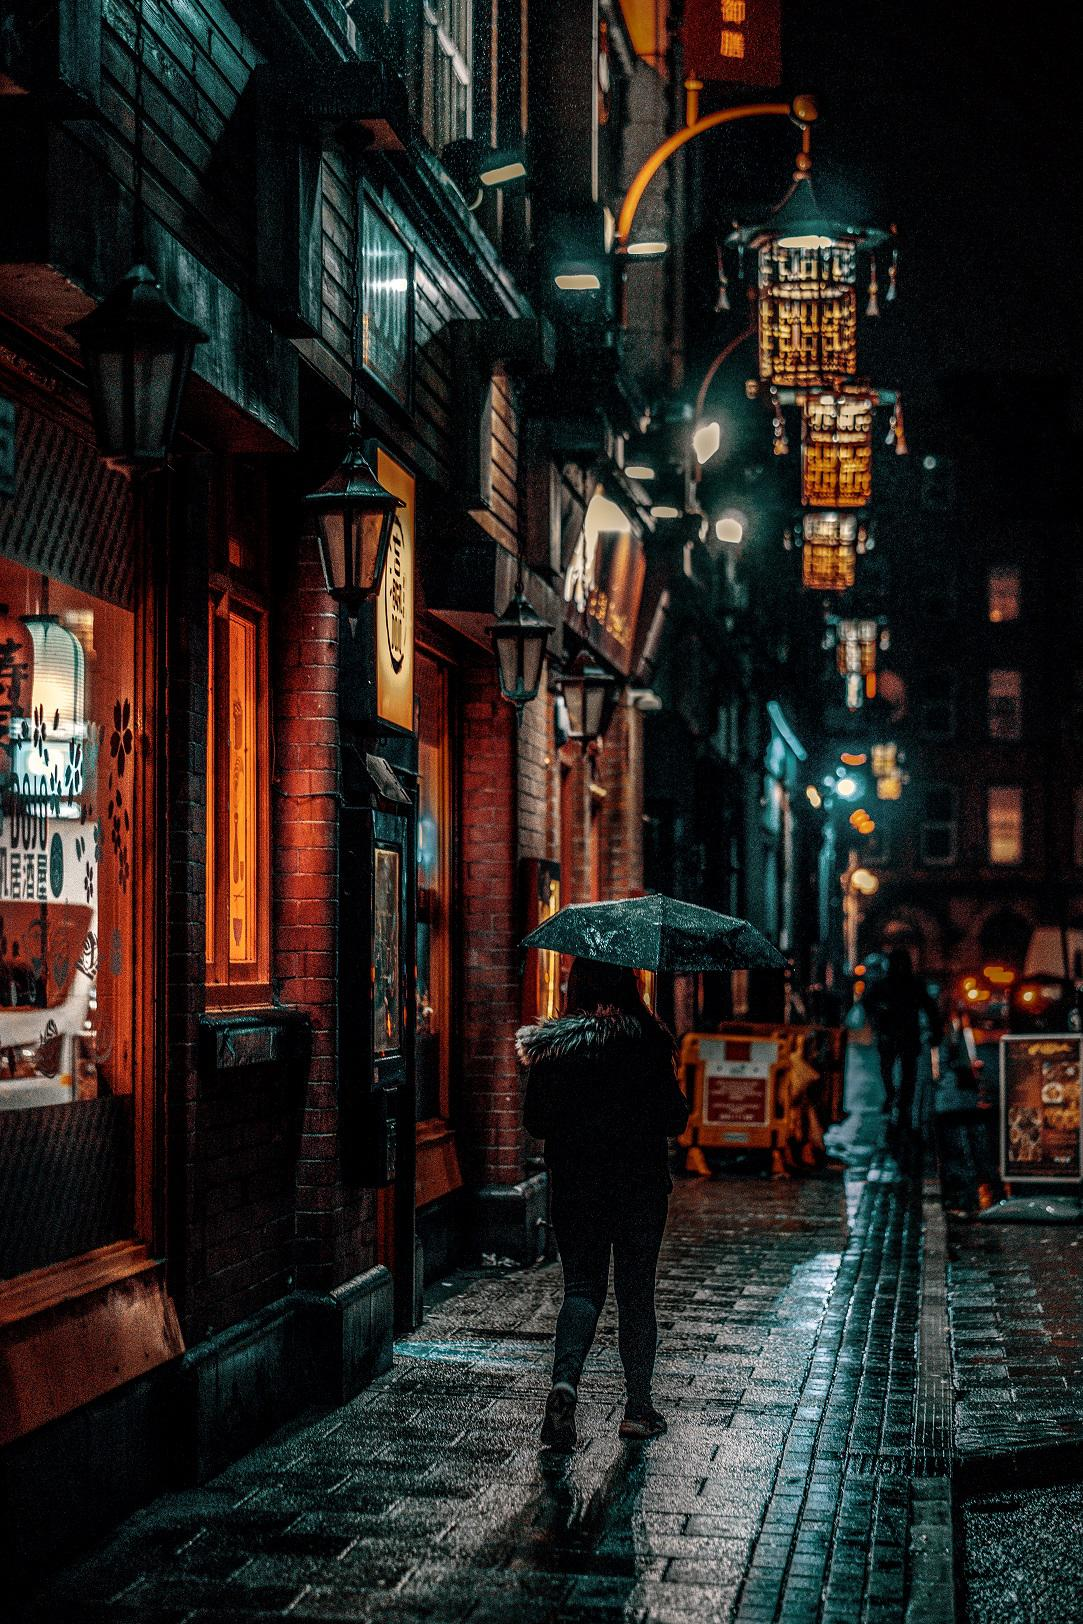 China Town, Newcastle Upon Tyne